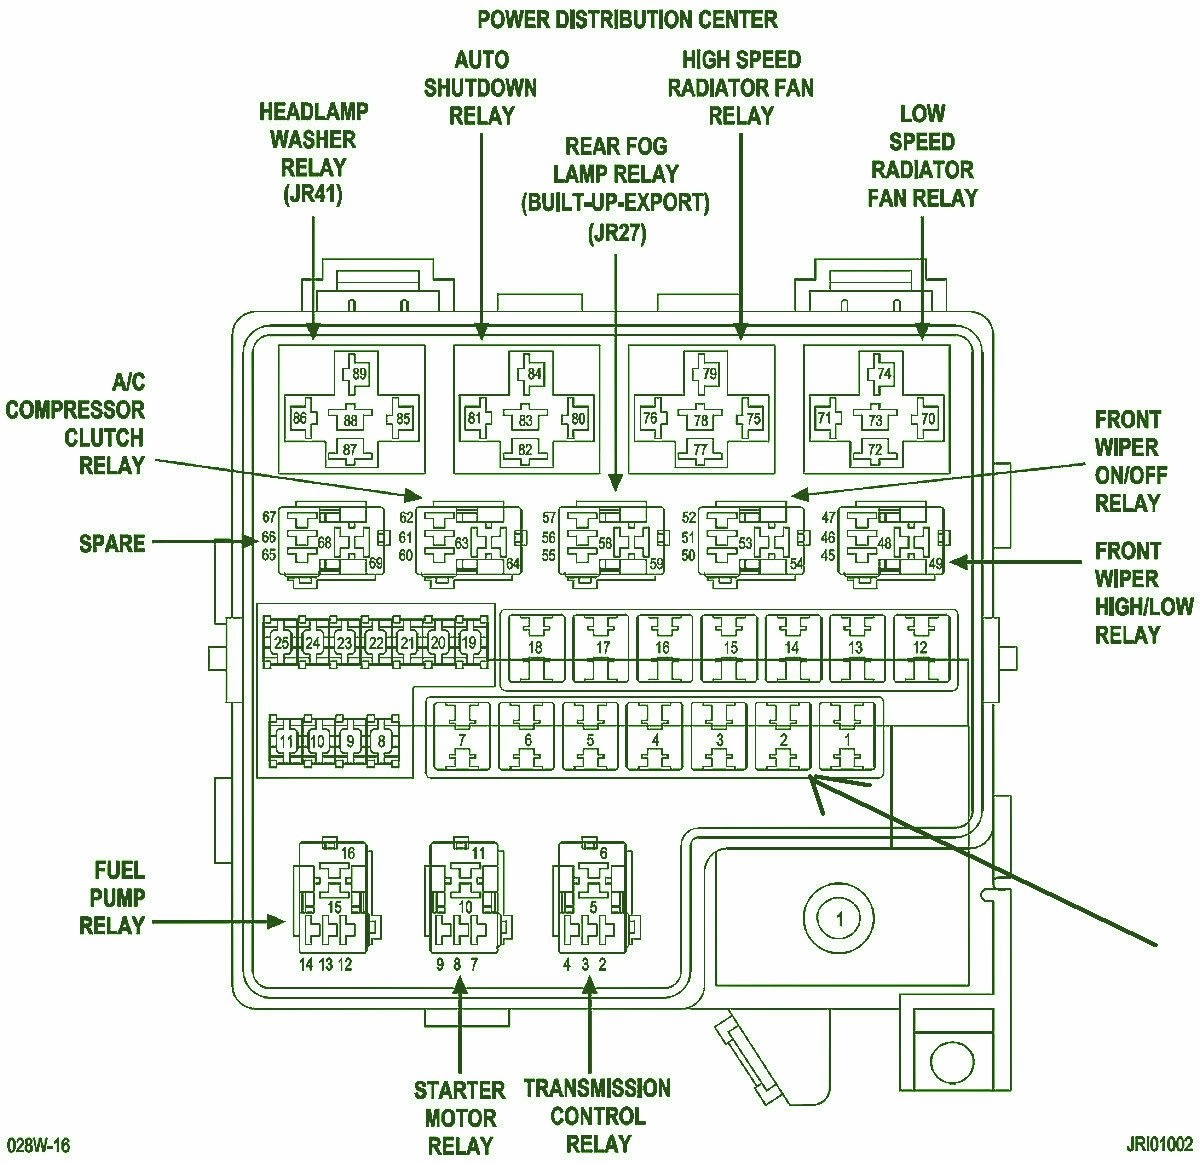 WY 40] 40 Jeep Grand Cherokee Upper Housing Fuse Box Diagram ...